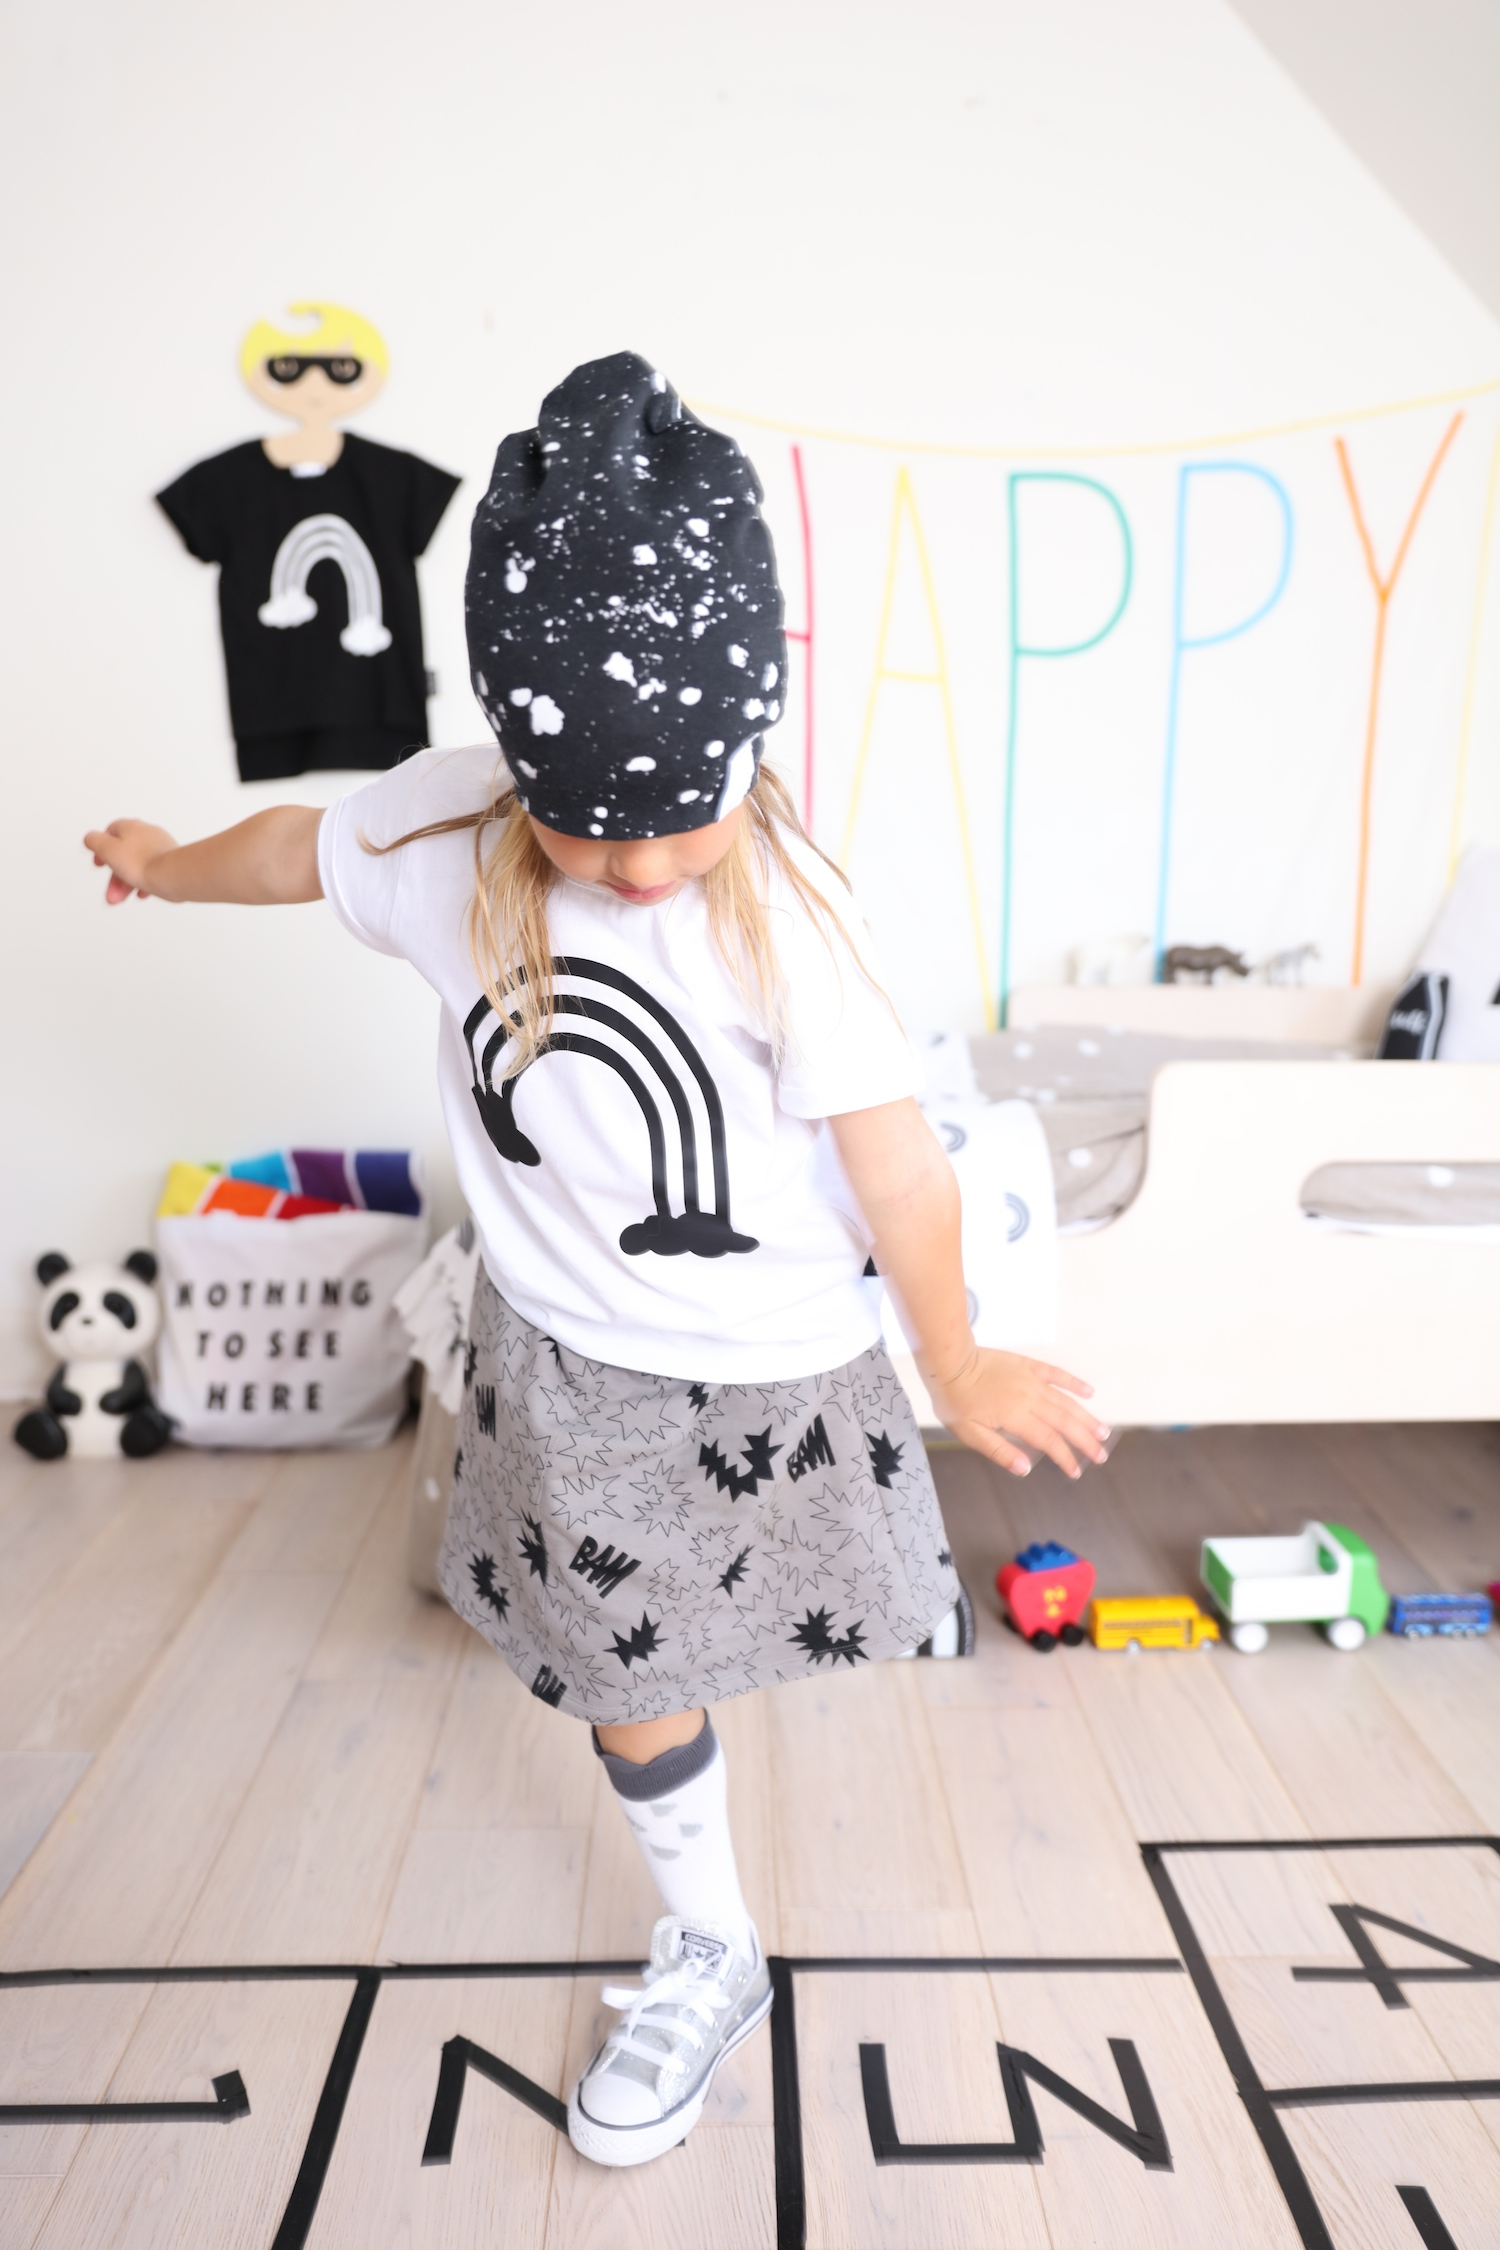 Little_man_happy_jaxon_james_kids_clothes_room